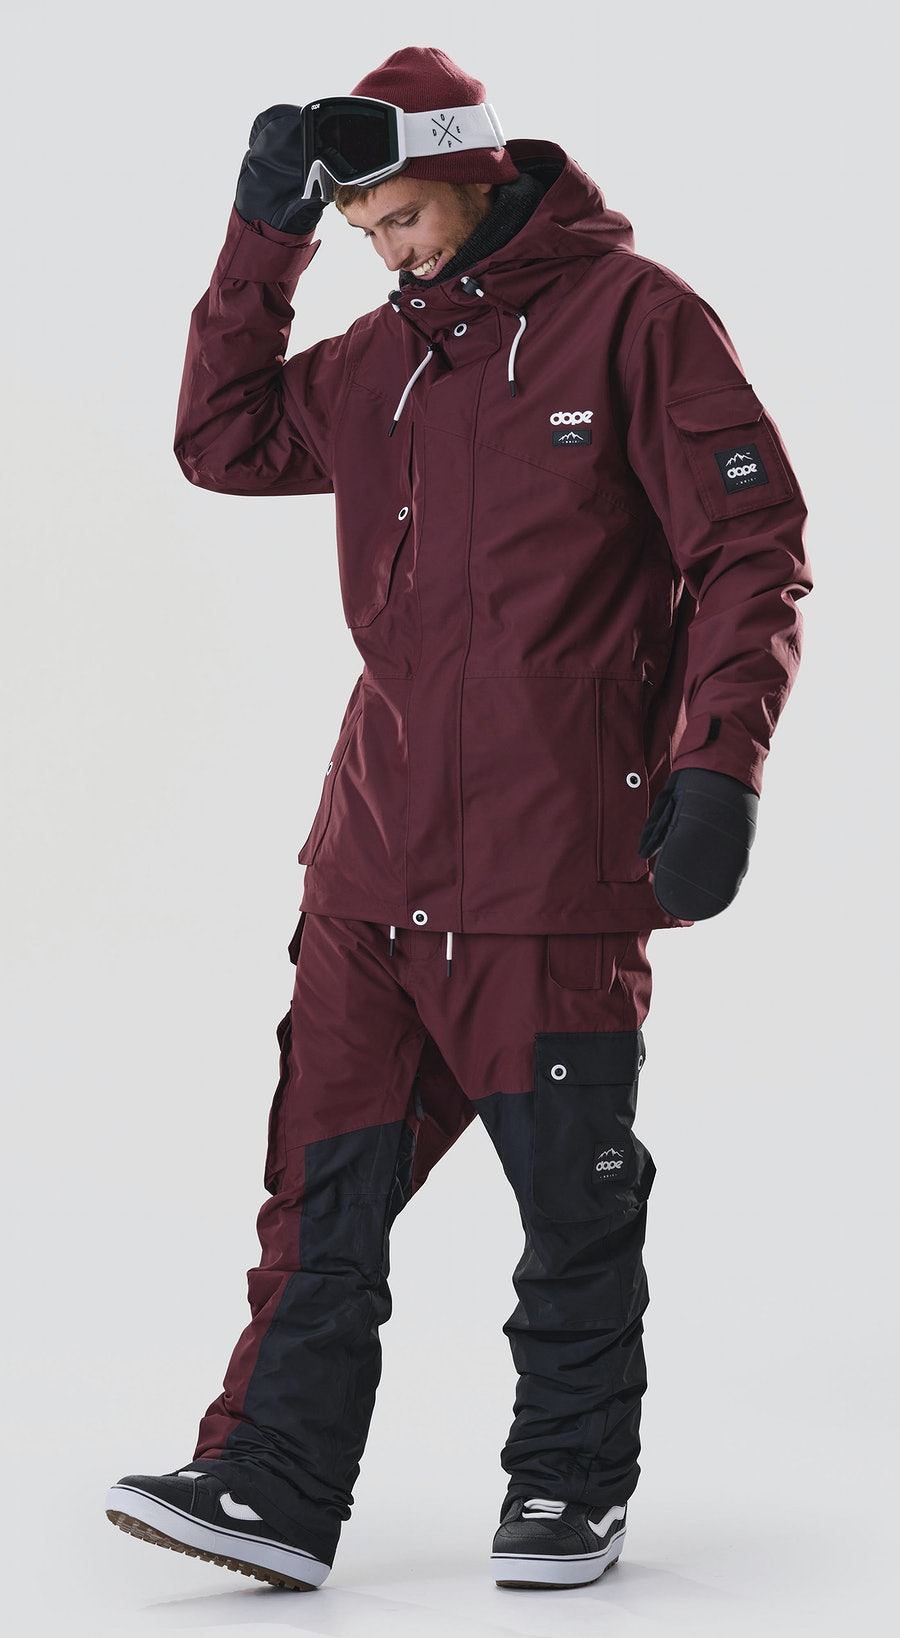 Dope Adept Burgundy Snowboard clothing Multi